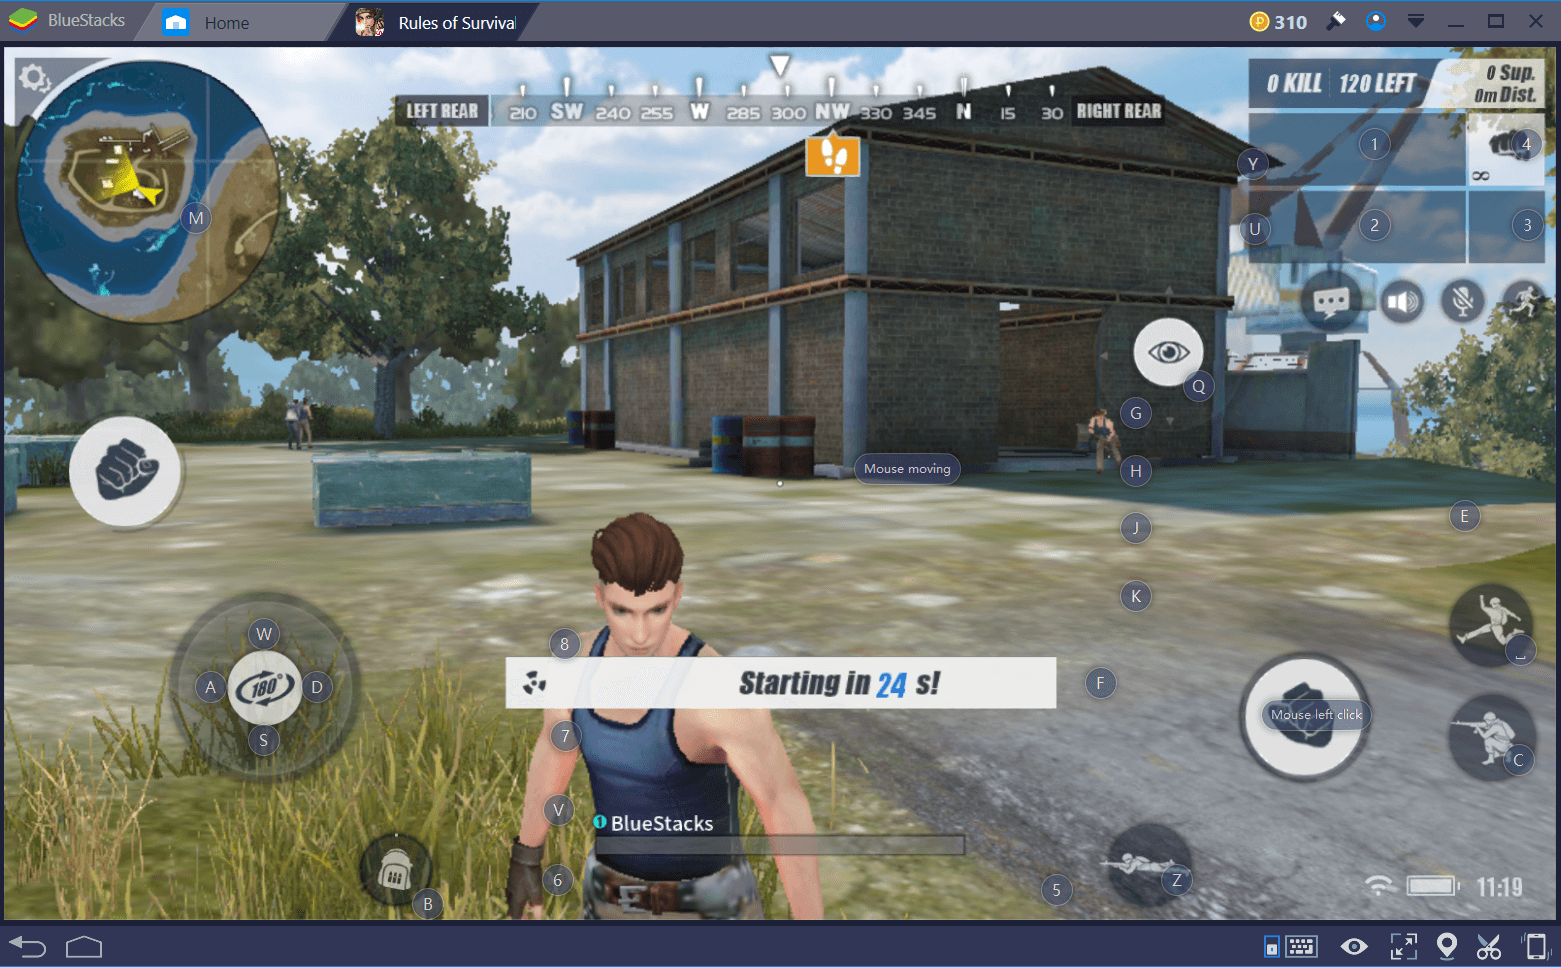 Rules of Survival Camera Controls